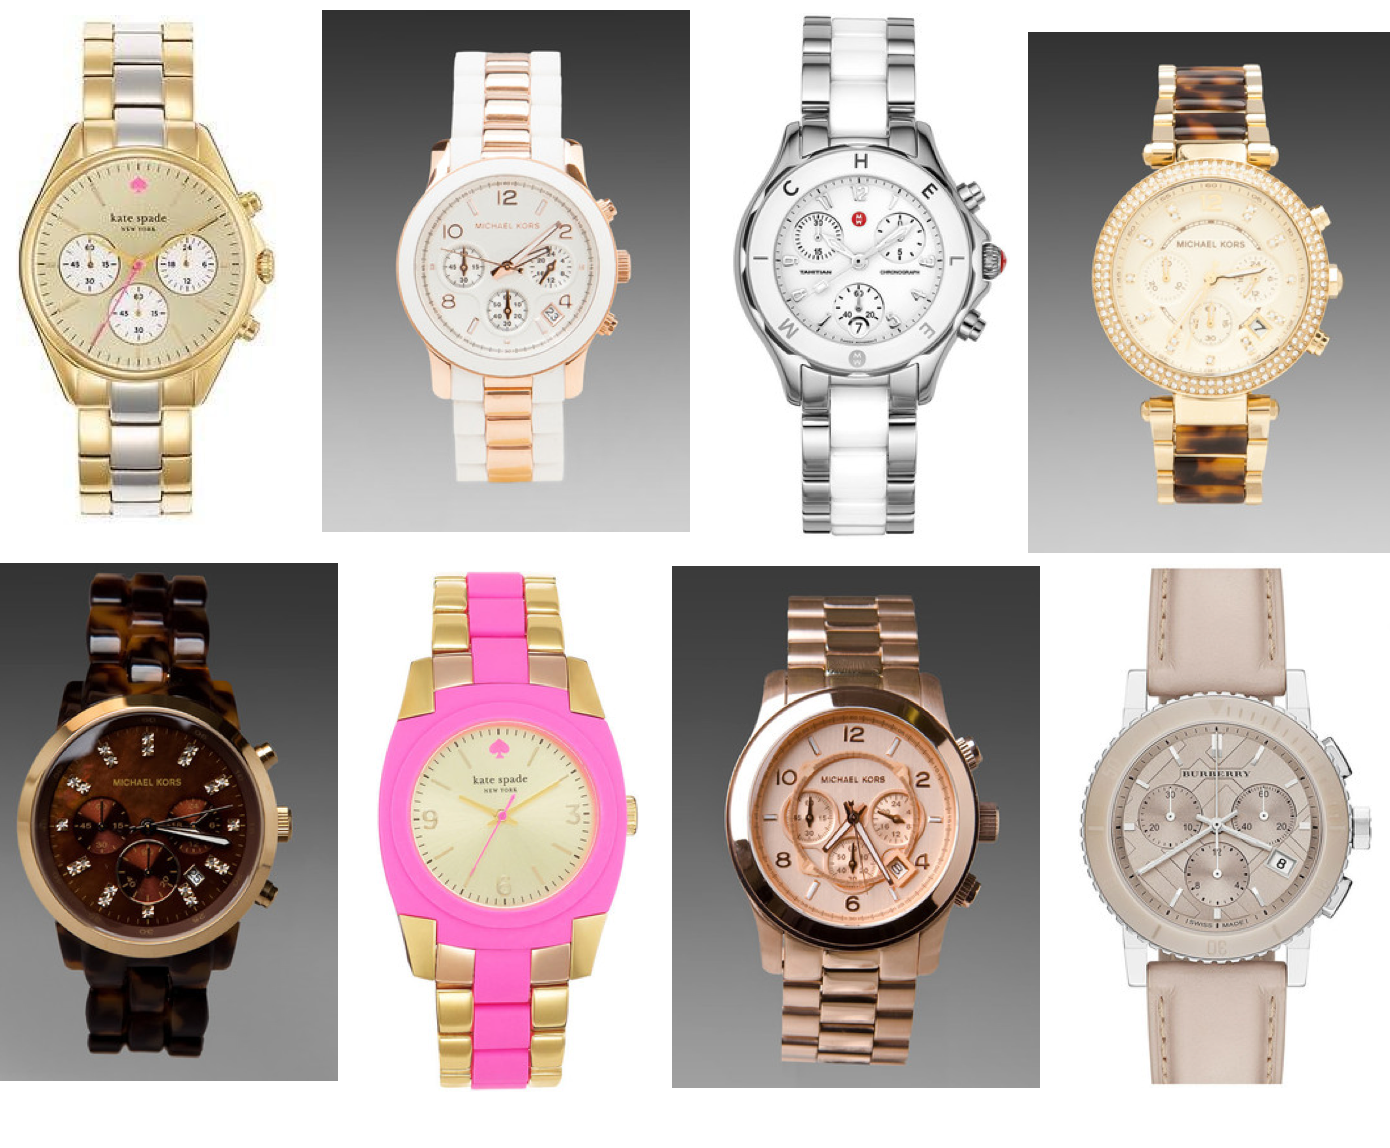 New Accessories: Watches and Scarves